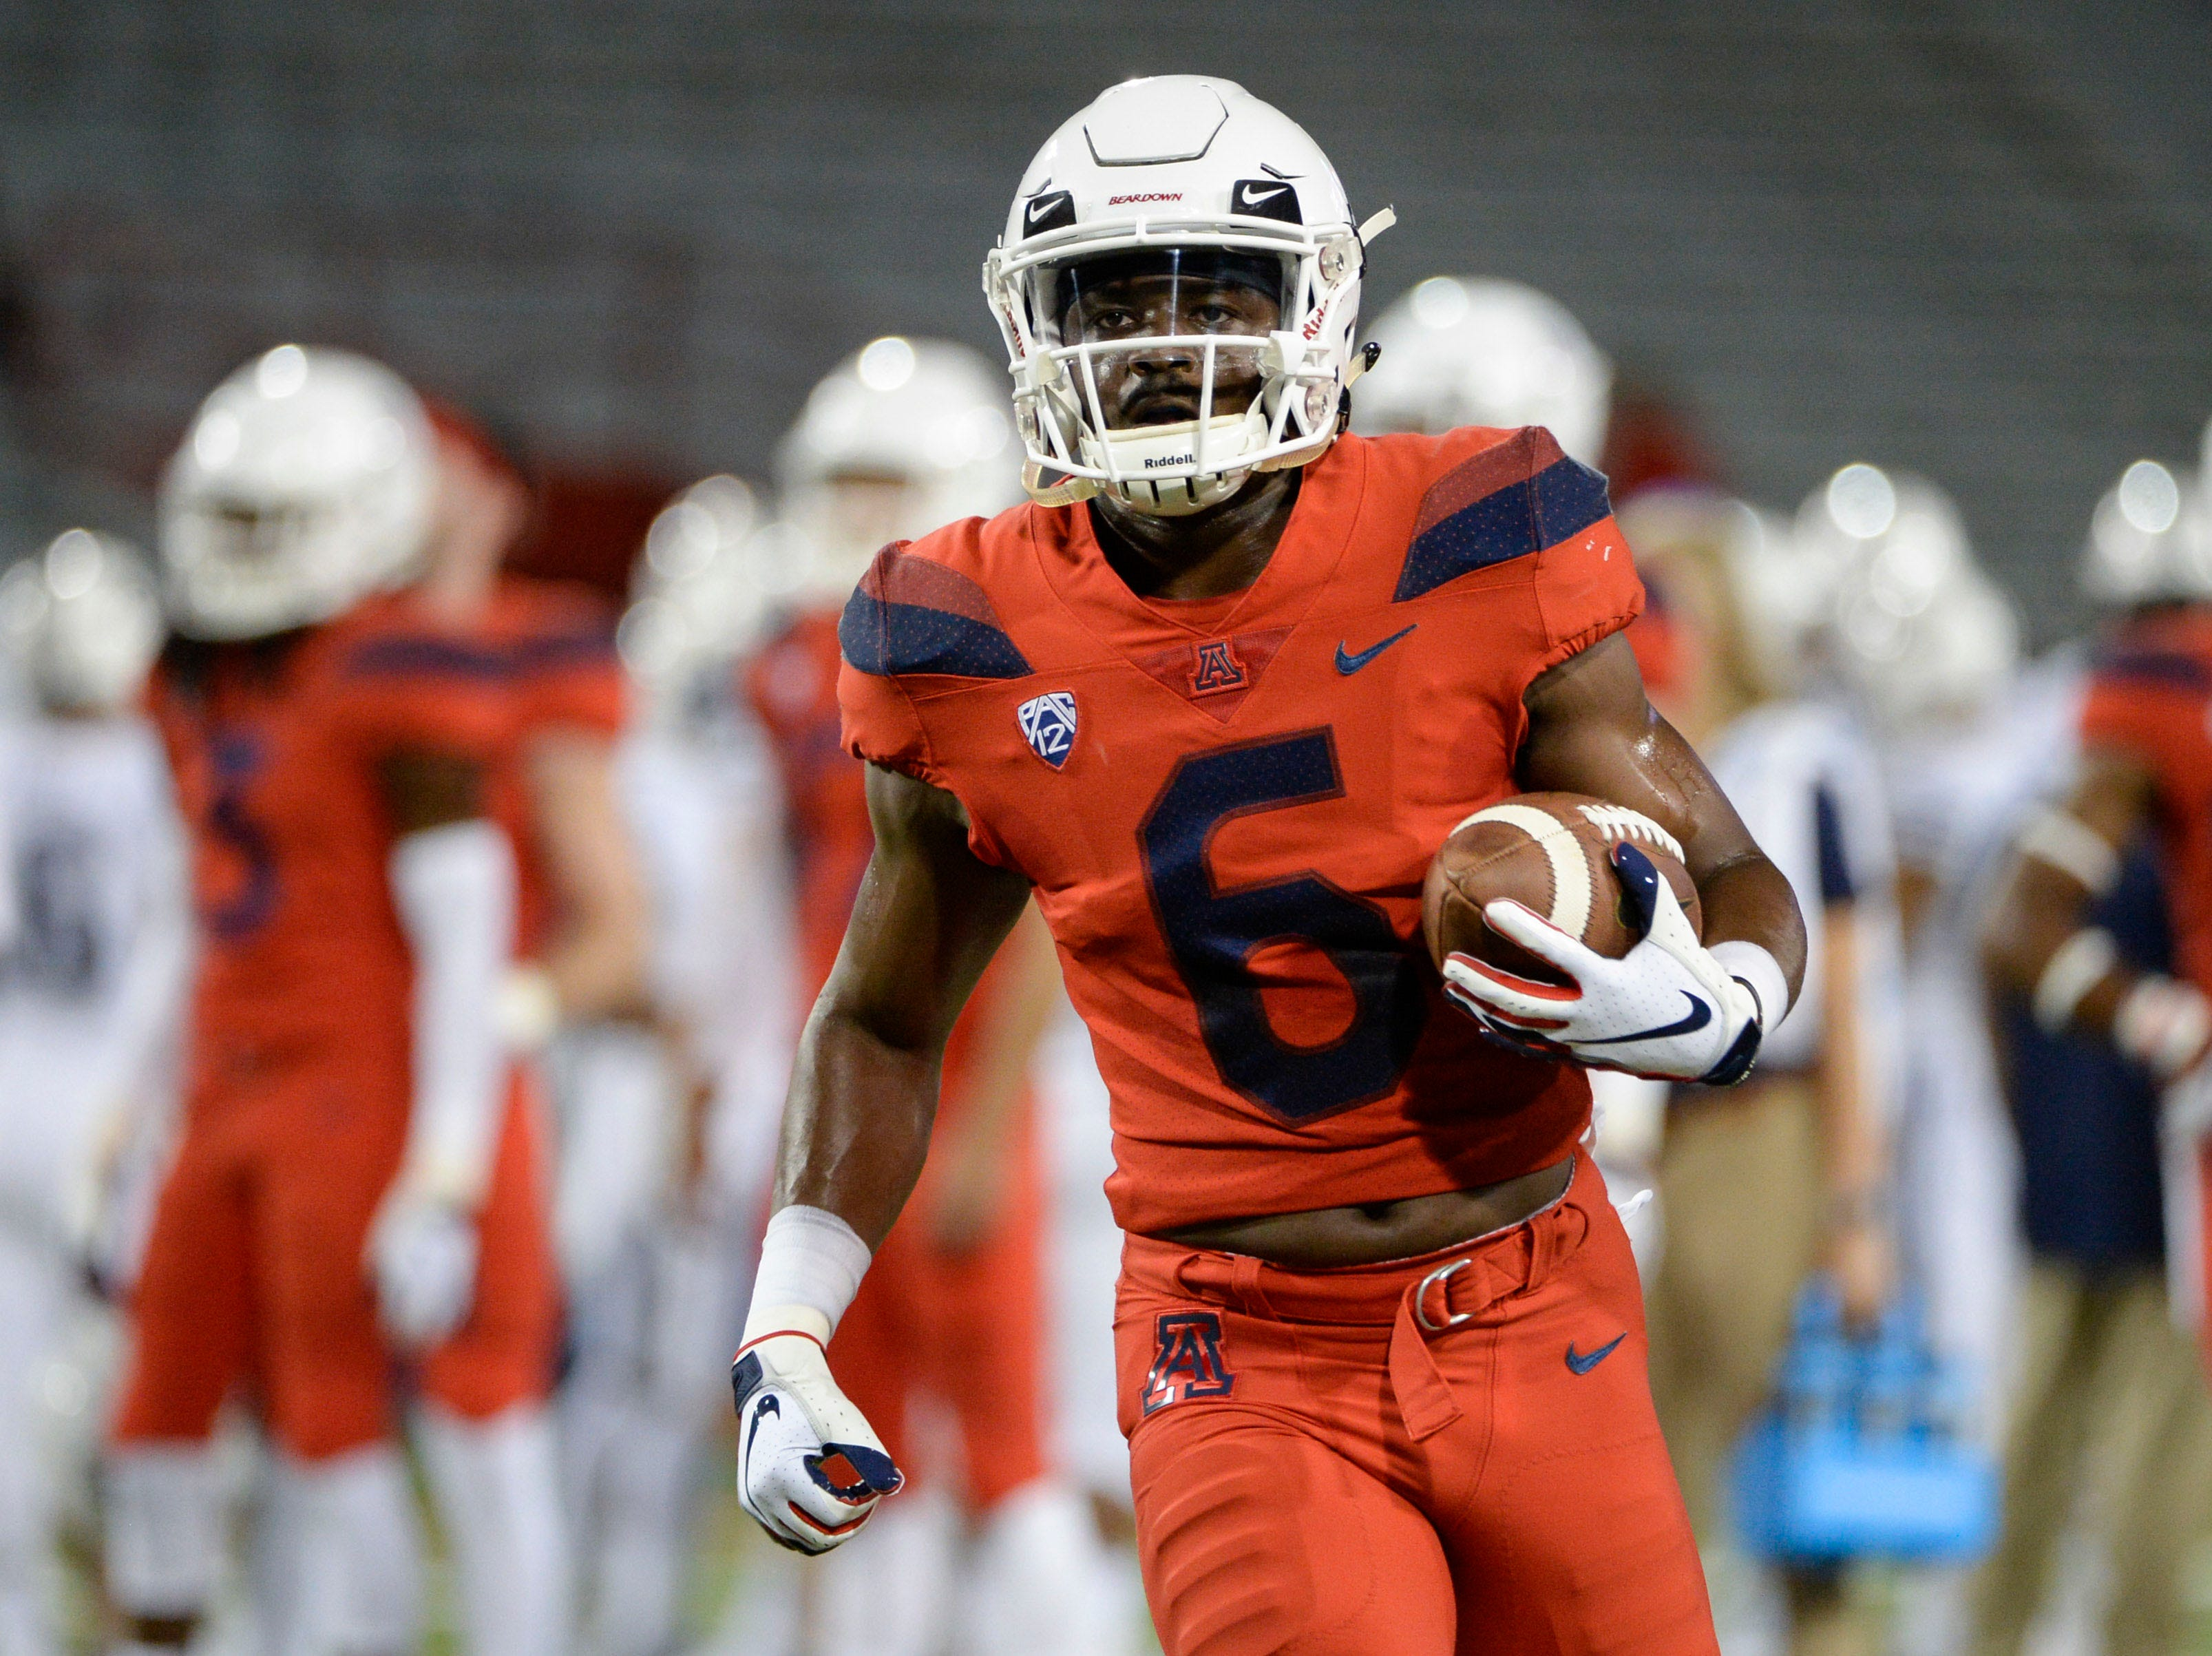 Sep 1, 2018; Tucson, AZ, USA; Arizona Wildcats wide receiver Shun Brown (6) warms up before playing the Brigham Young Cougars at Arizona Stadium.